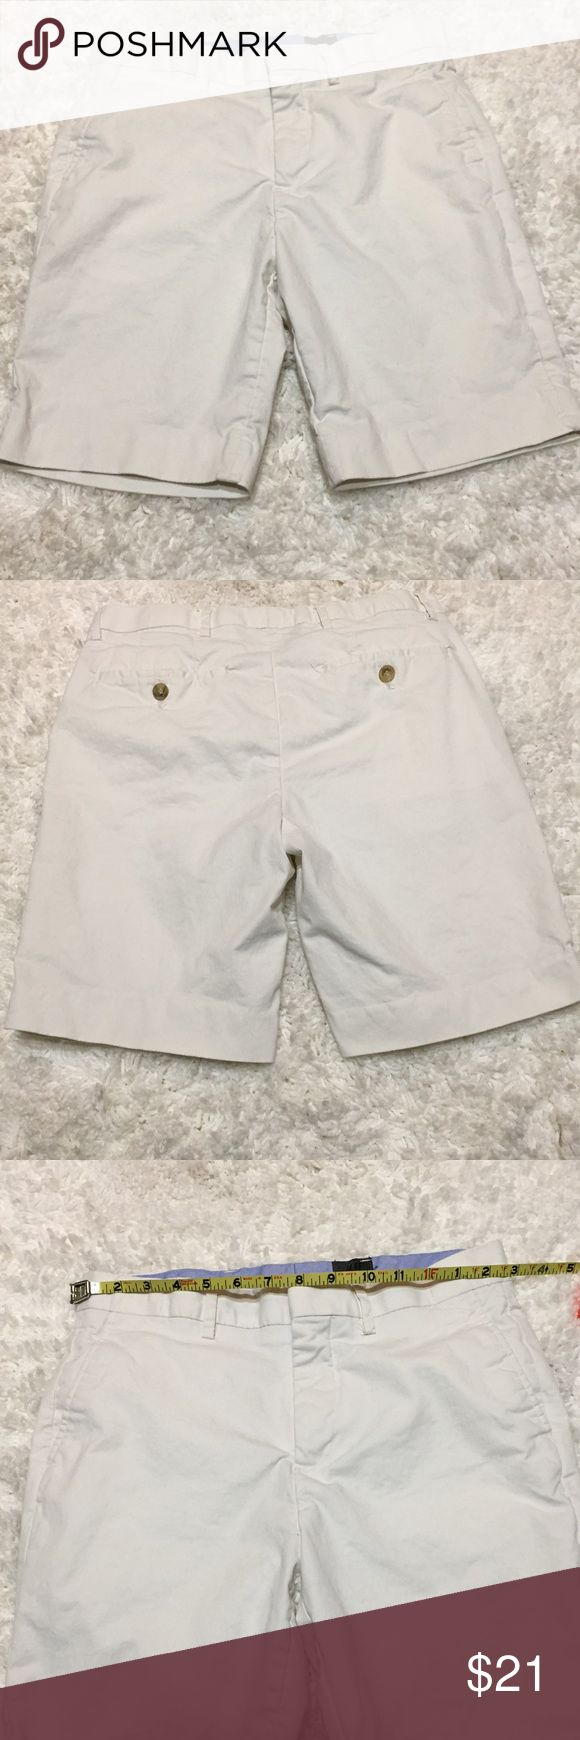 "H&M Men's White shorts Size 30R H&M Men's White shorts Size 30R. Material: 97% Cotton, 3% Elastane. Machine Wash Cold. Washed once and never worn. Approximate Measurements laying flat: Waist 30"", Inseam 8"", Hips: 17.5"". 🚫 NO TRADES OR LOW BALL OFFERS🚫 A5 H&M Shorts Flat Front"